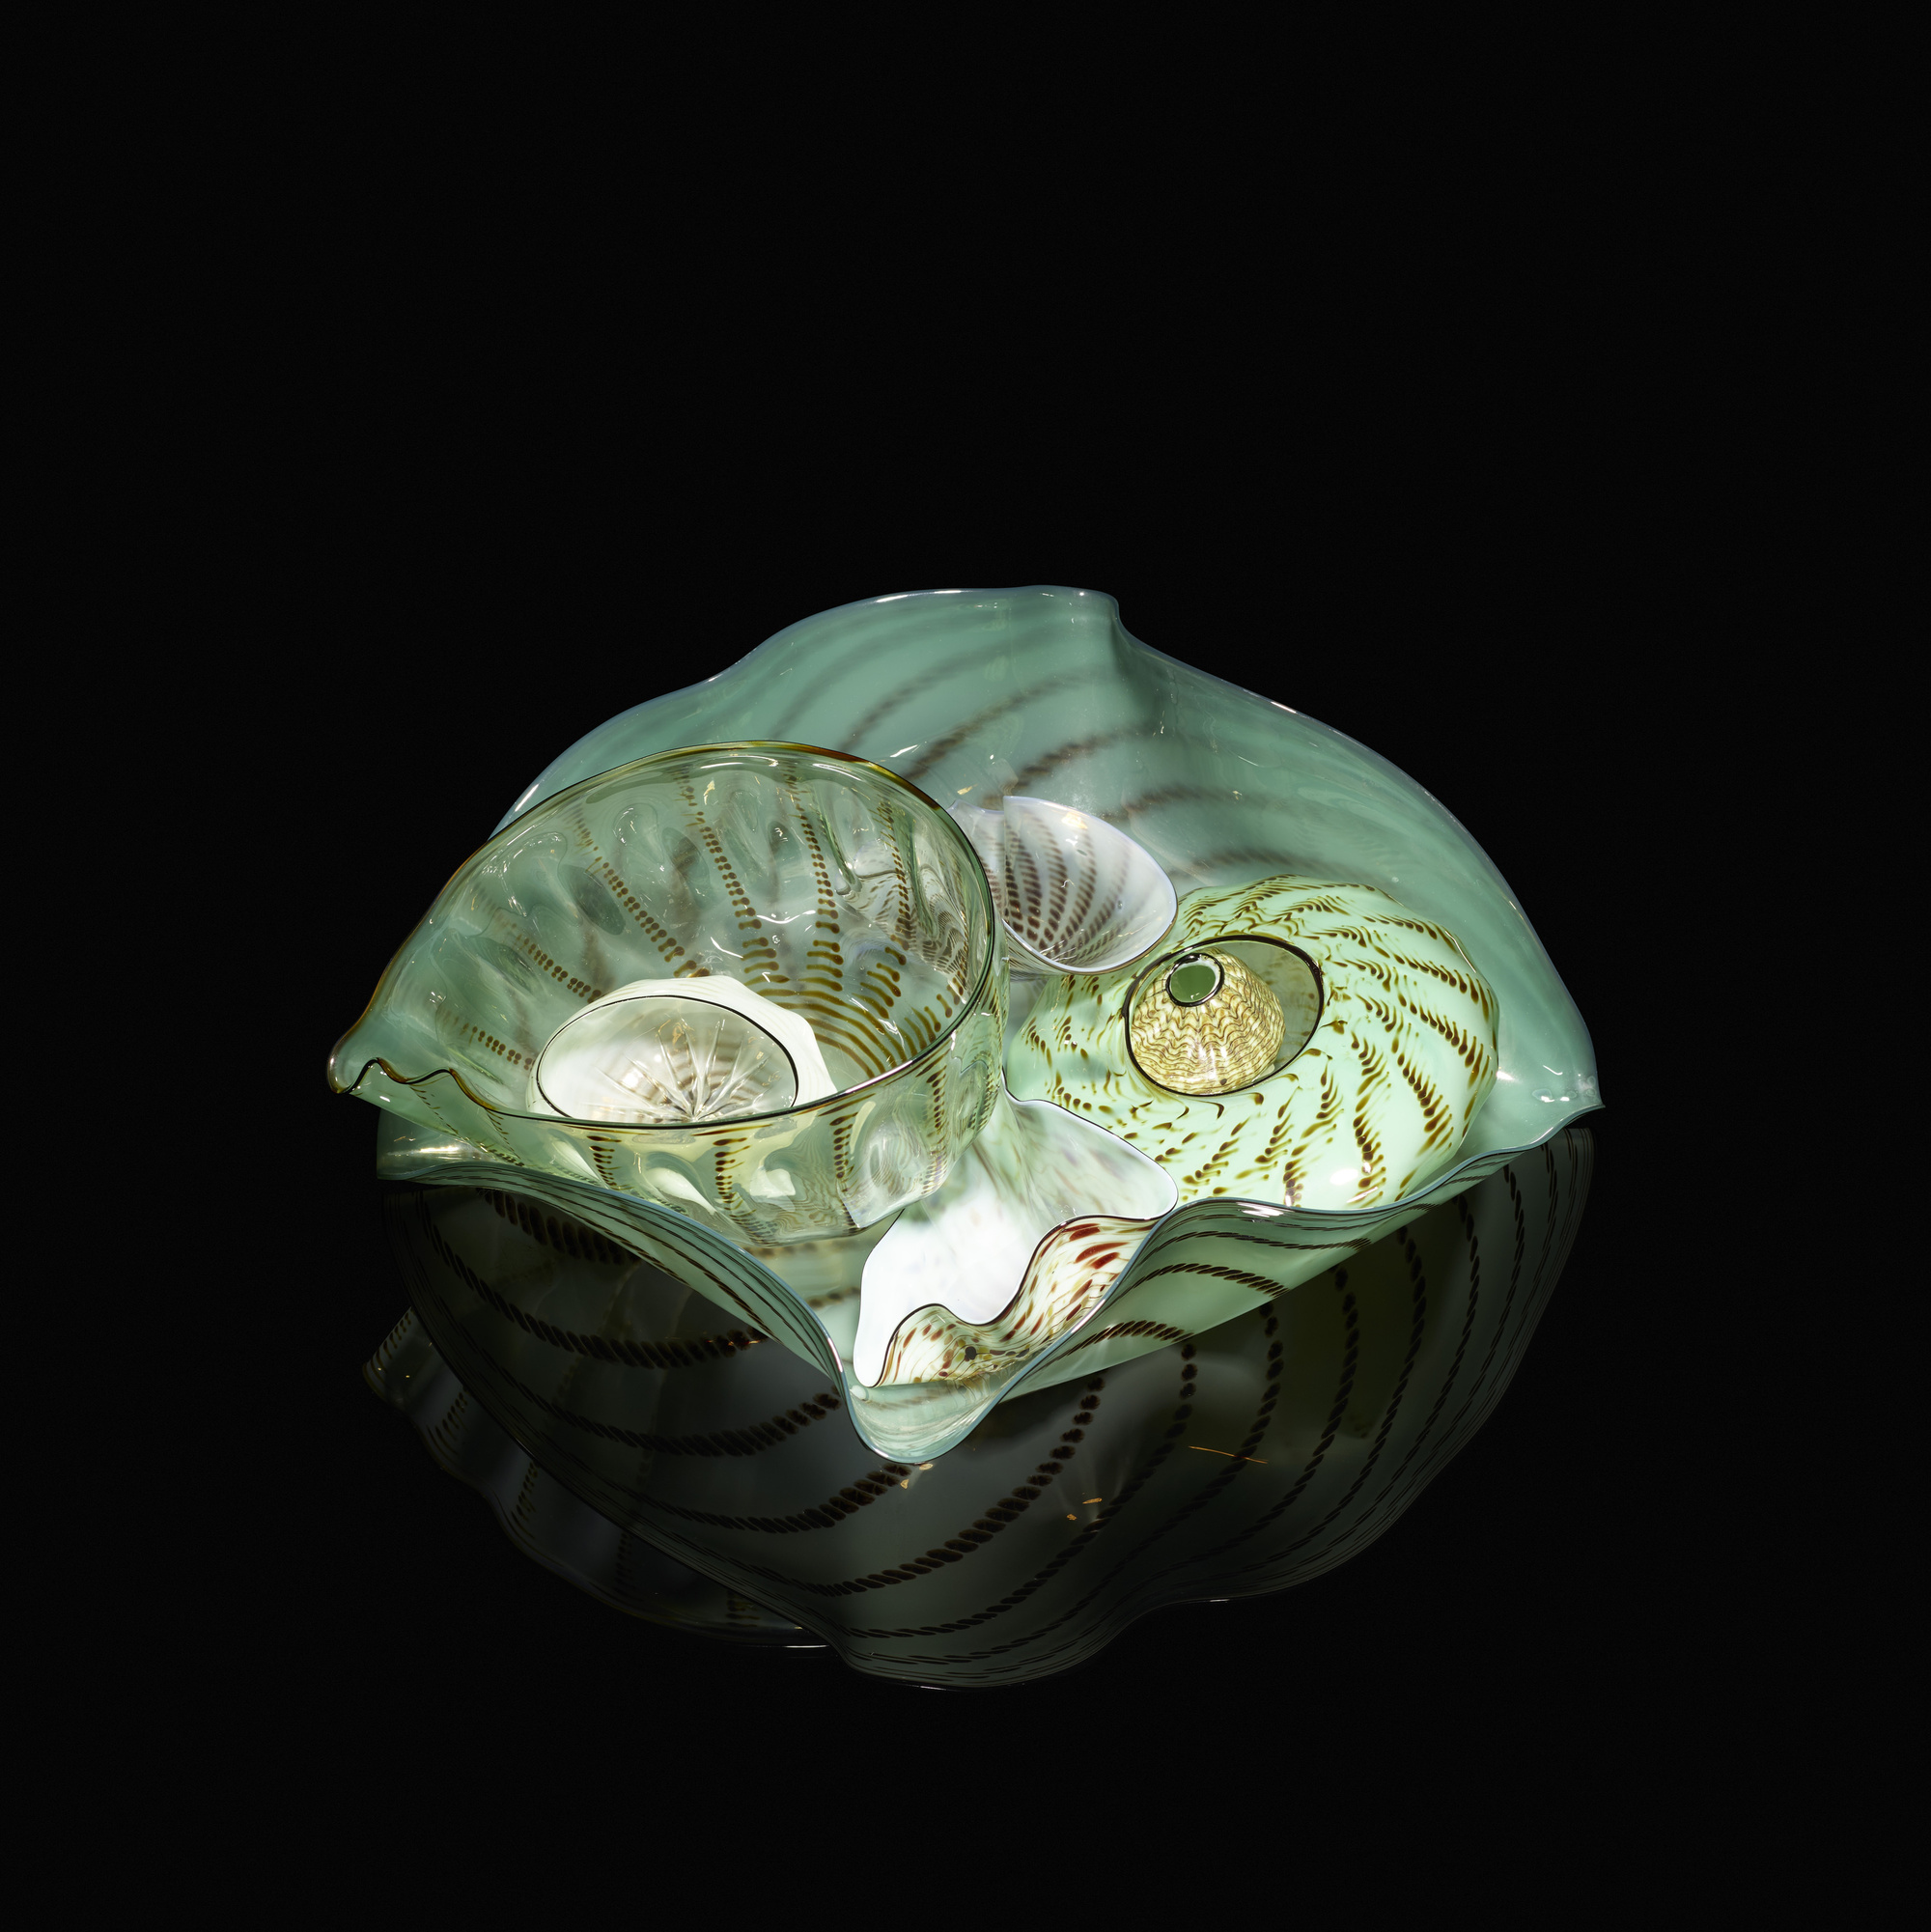 105: Dale Chihuly / Seaform Set (1 of 4)